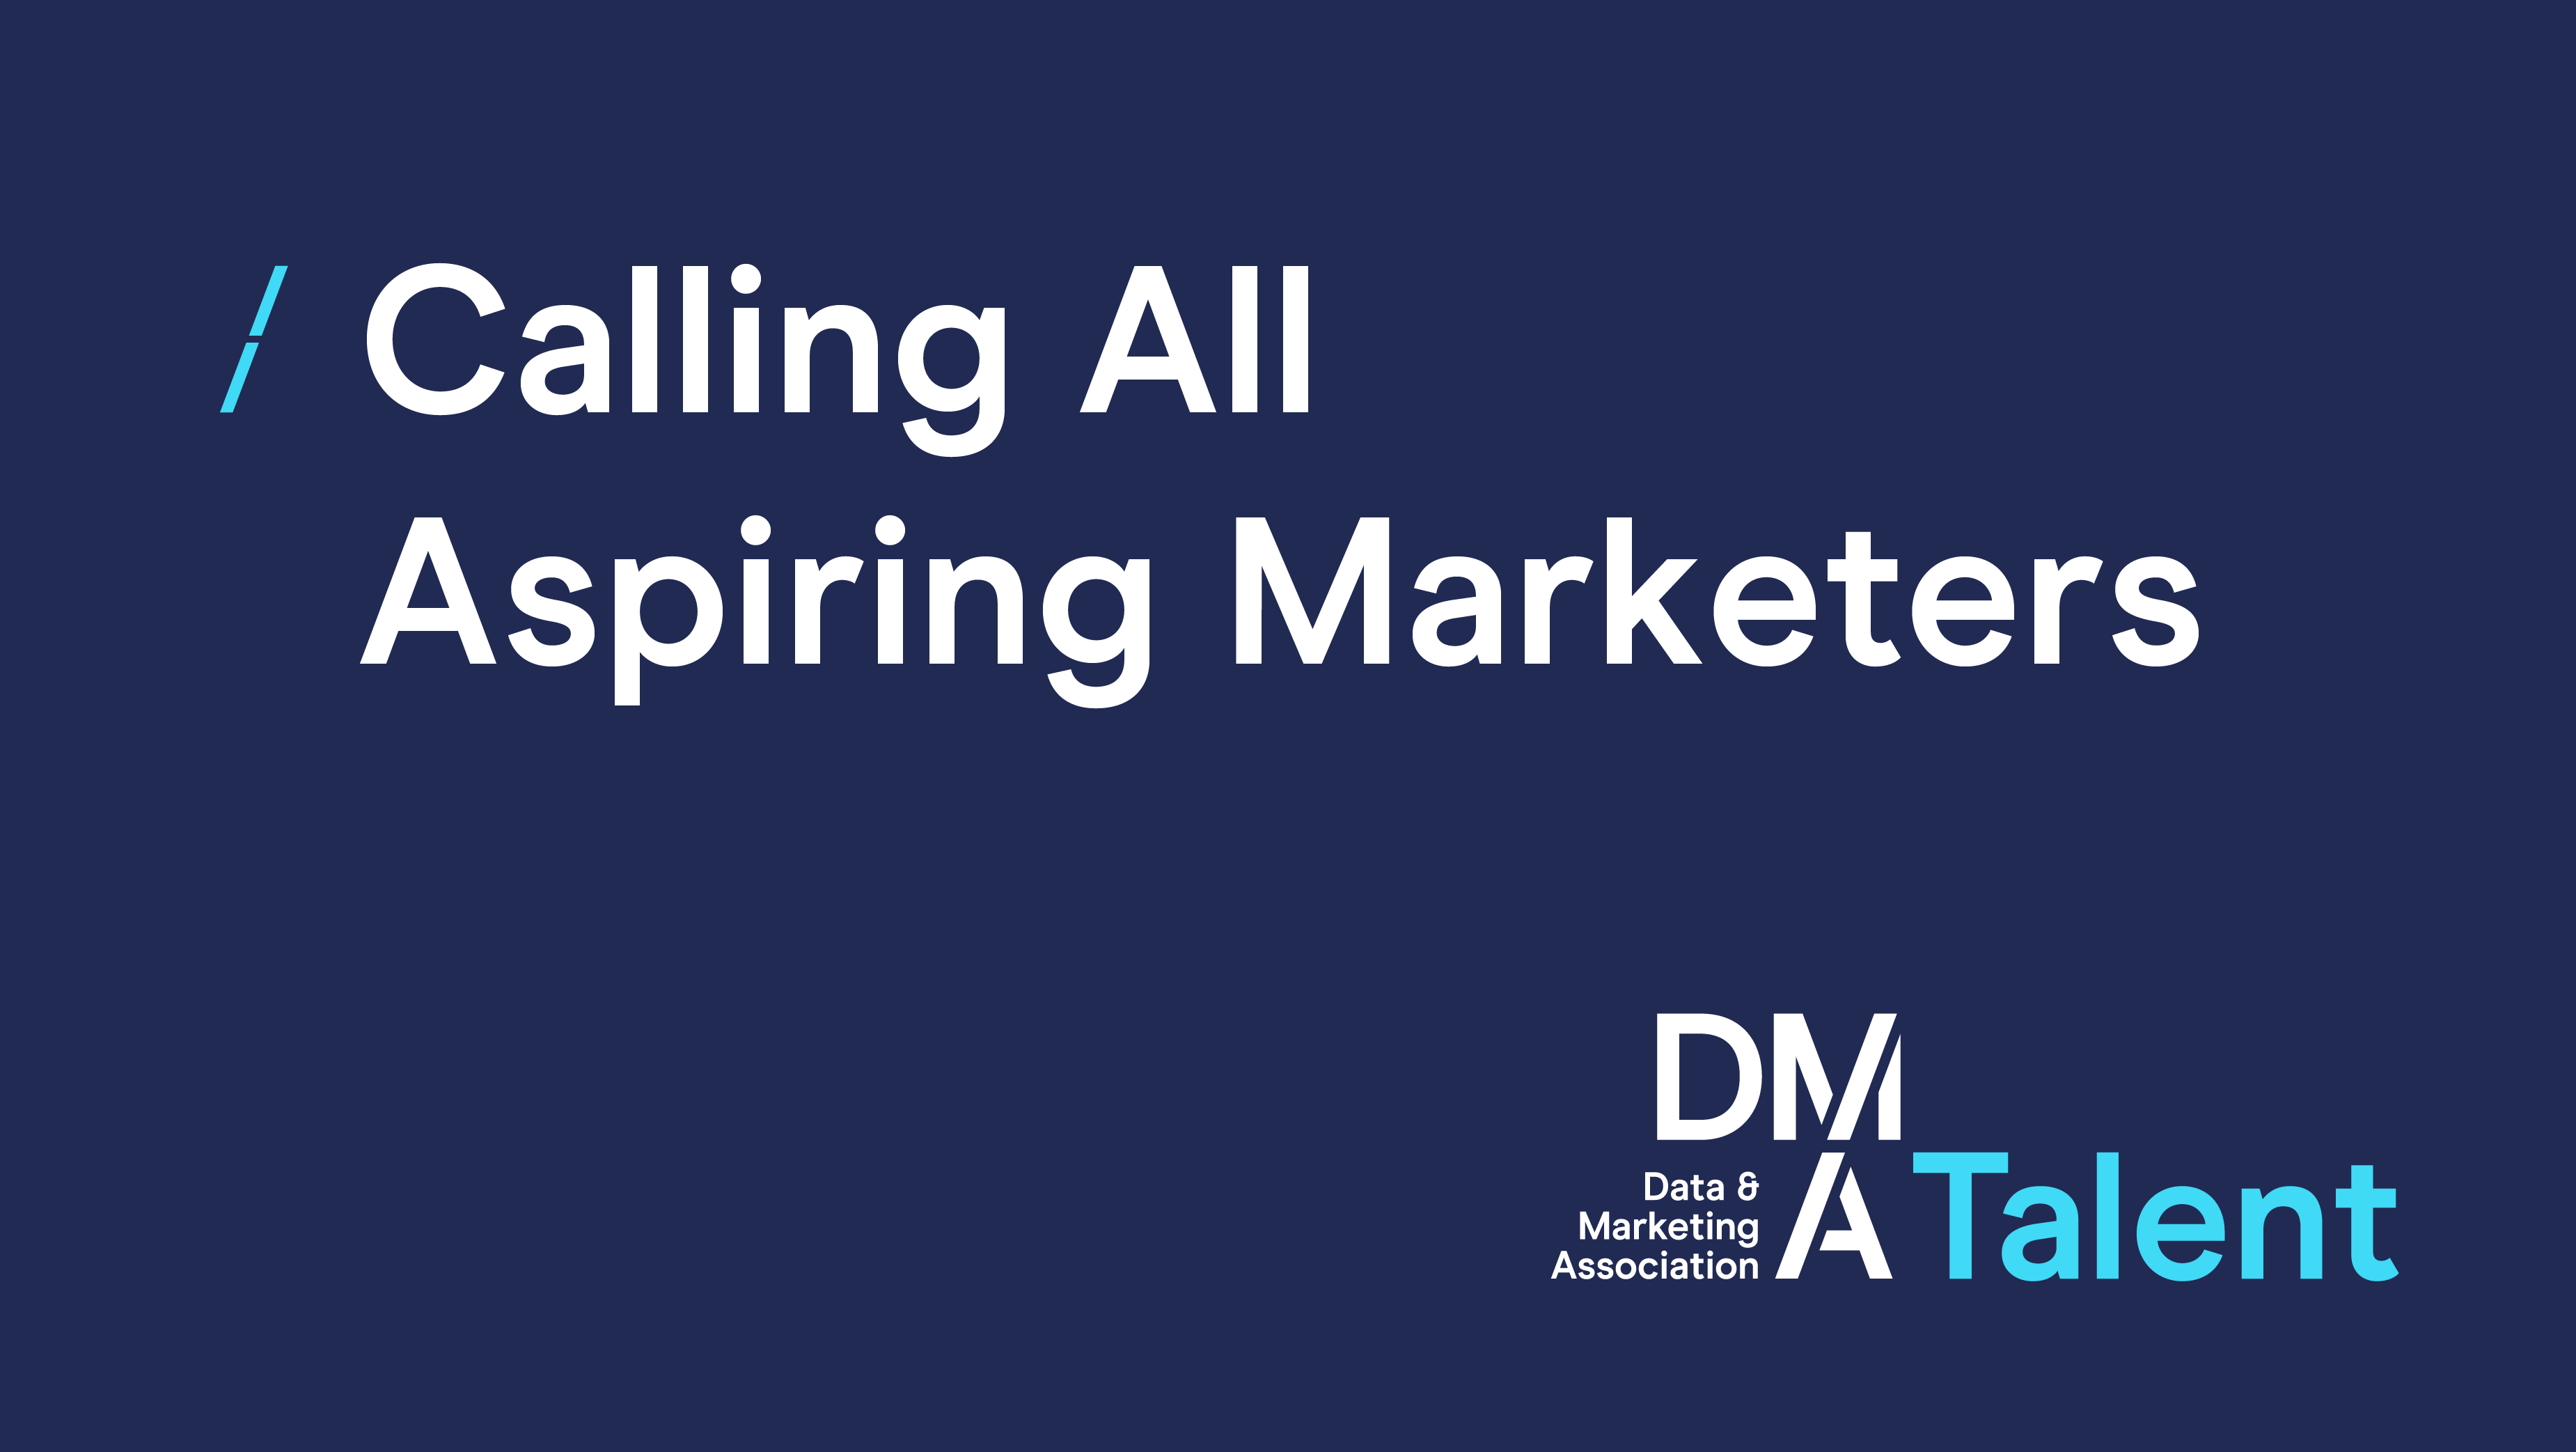 Calling-All-Aspiring-Marketers_DMA Talent.png